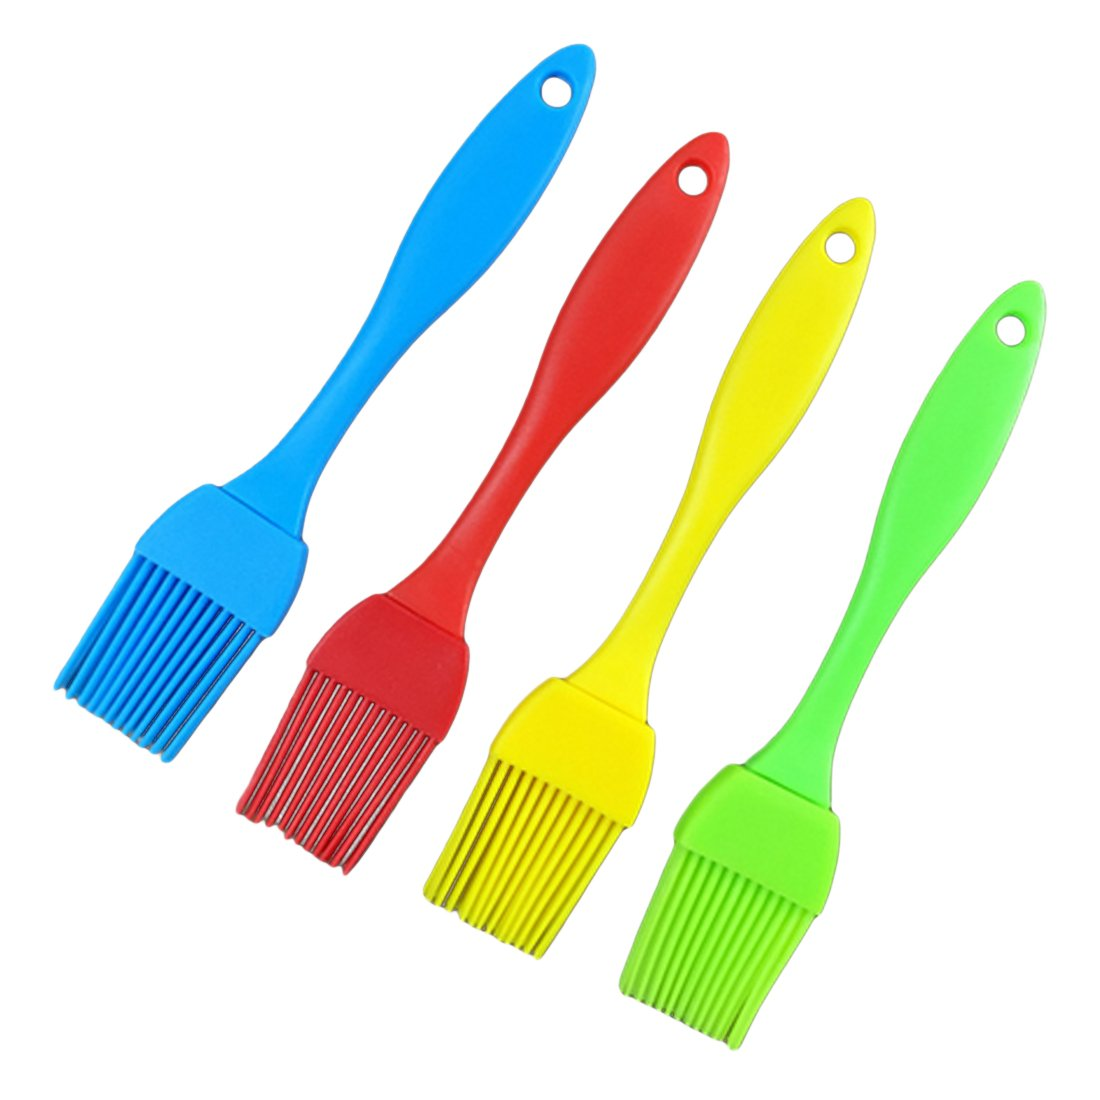 joyliveCY Silicone Basting Pastry BBQ Brush CY-Buity